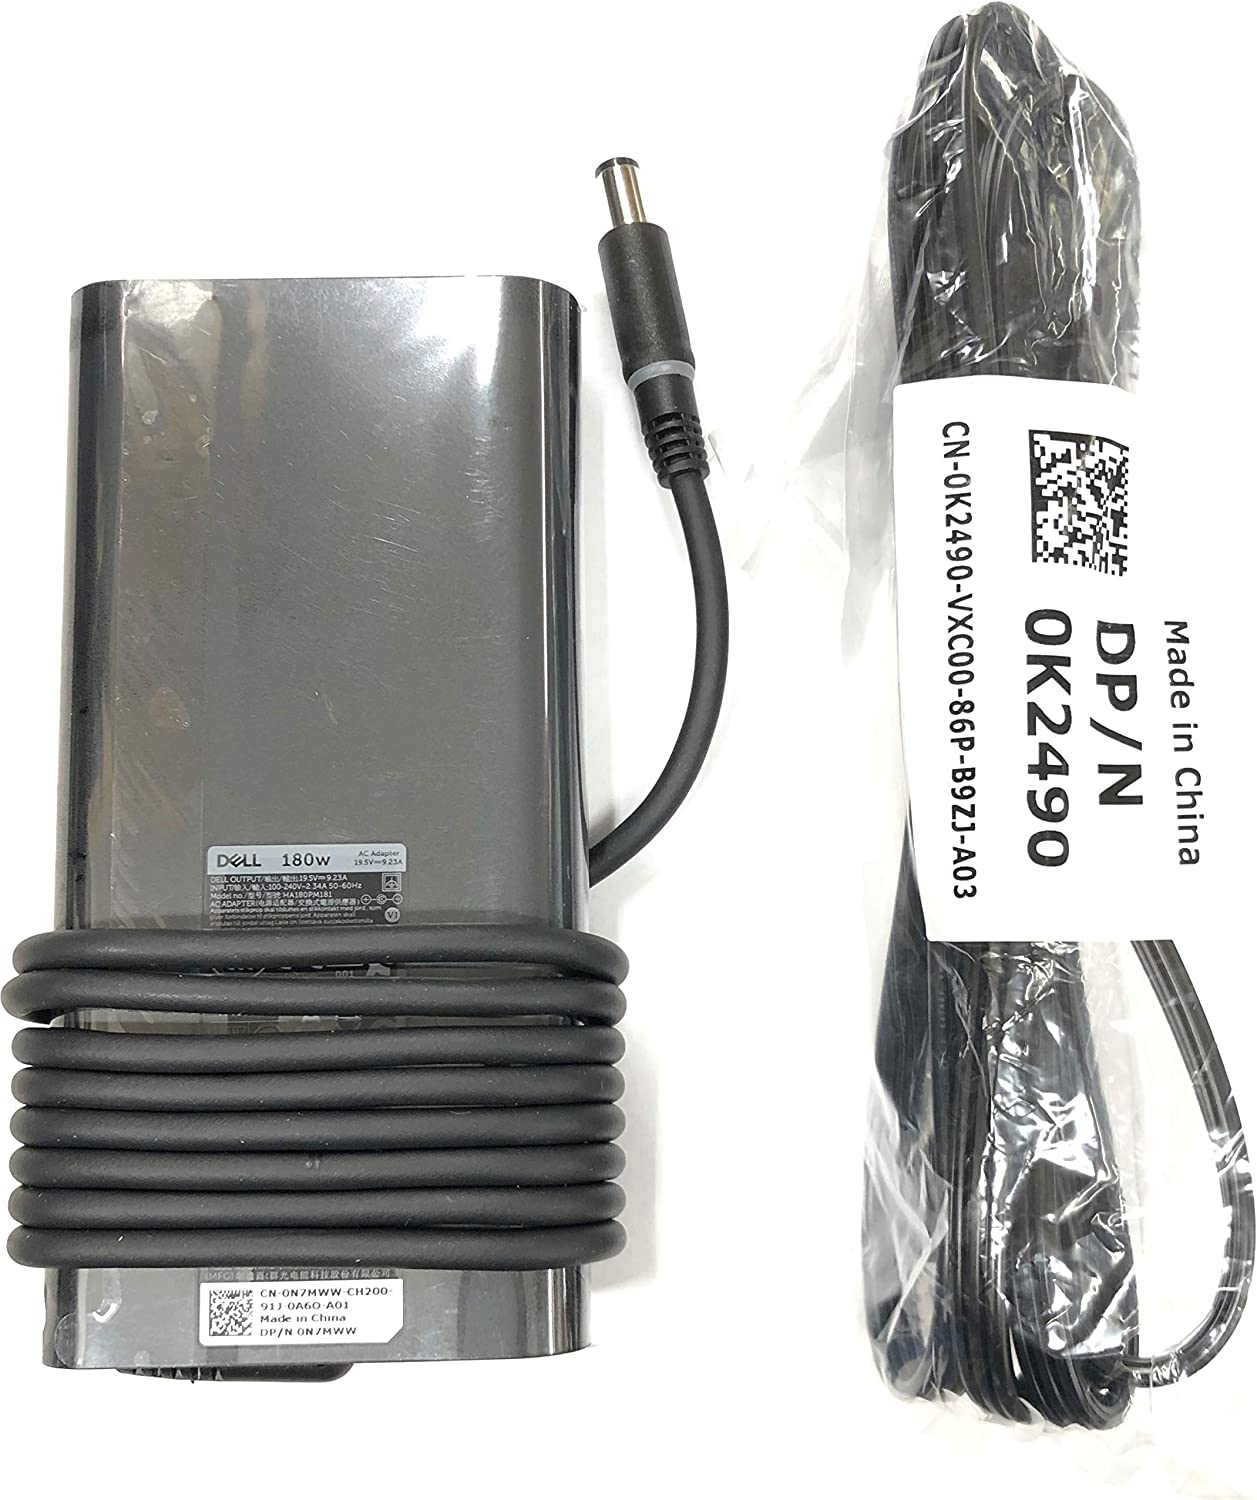 Dell 19.5V 9.23A 180W New Slim Style AC Adapter for Dell Mobile Precision 7530, 100% Compatible with P/N: 450-AGCU, NDFTY, 0N7MWW, N7MWW, HA180PM181.